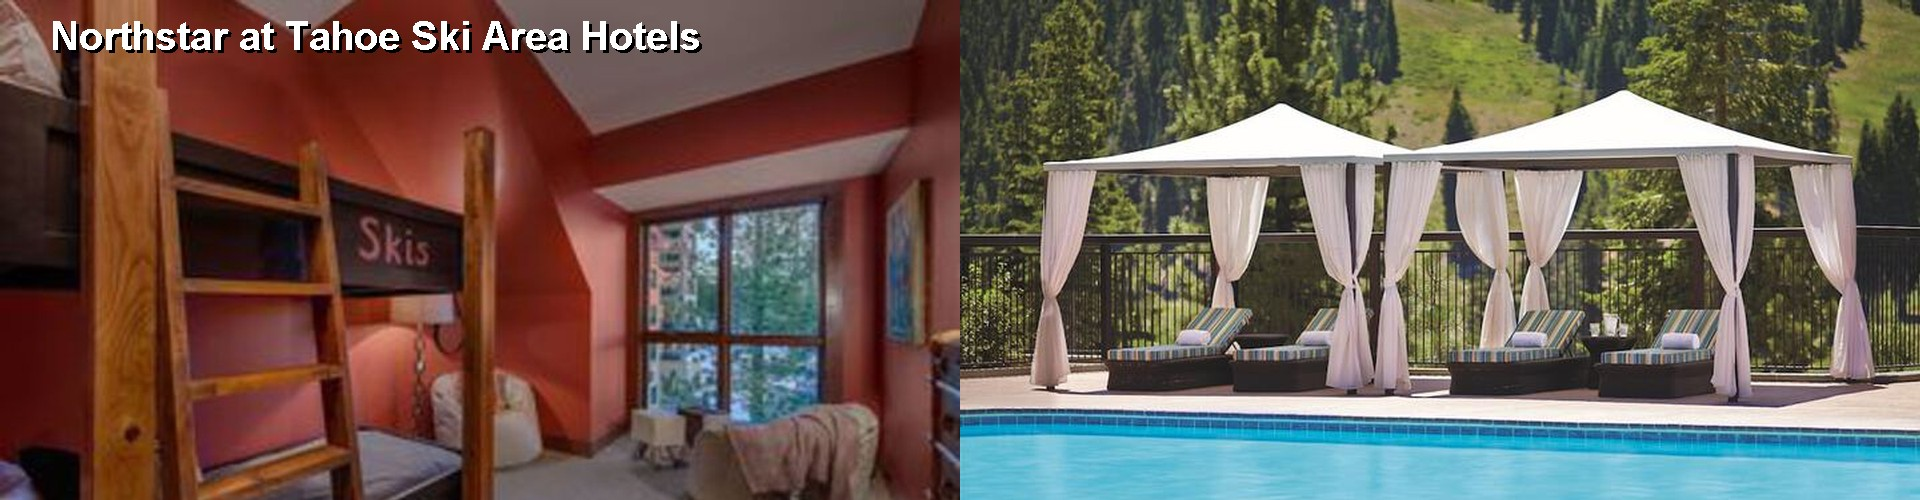 5 Best Hotels near Northstar at Tahoe Ski Area